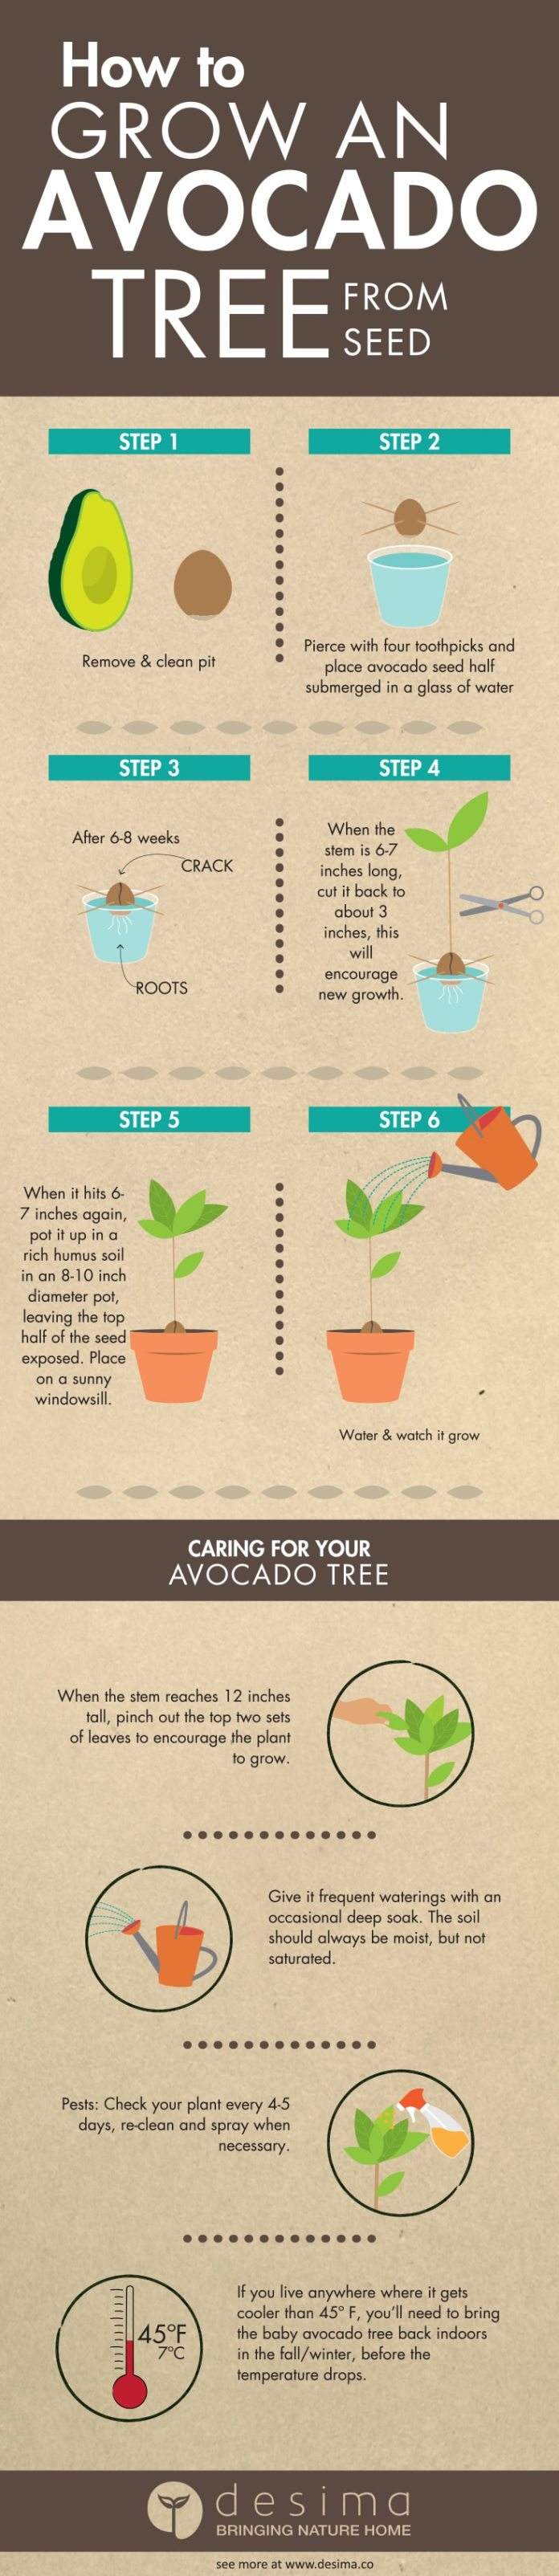 How_to_Grow_an_Avocado_Tree_From_Seed